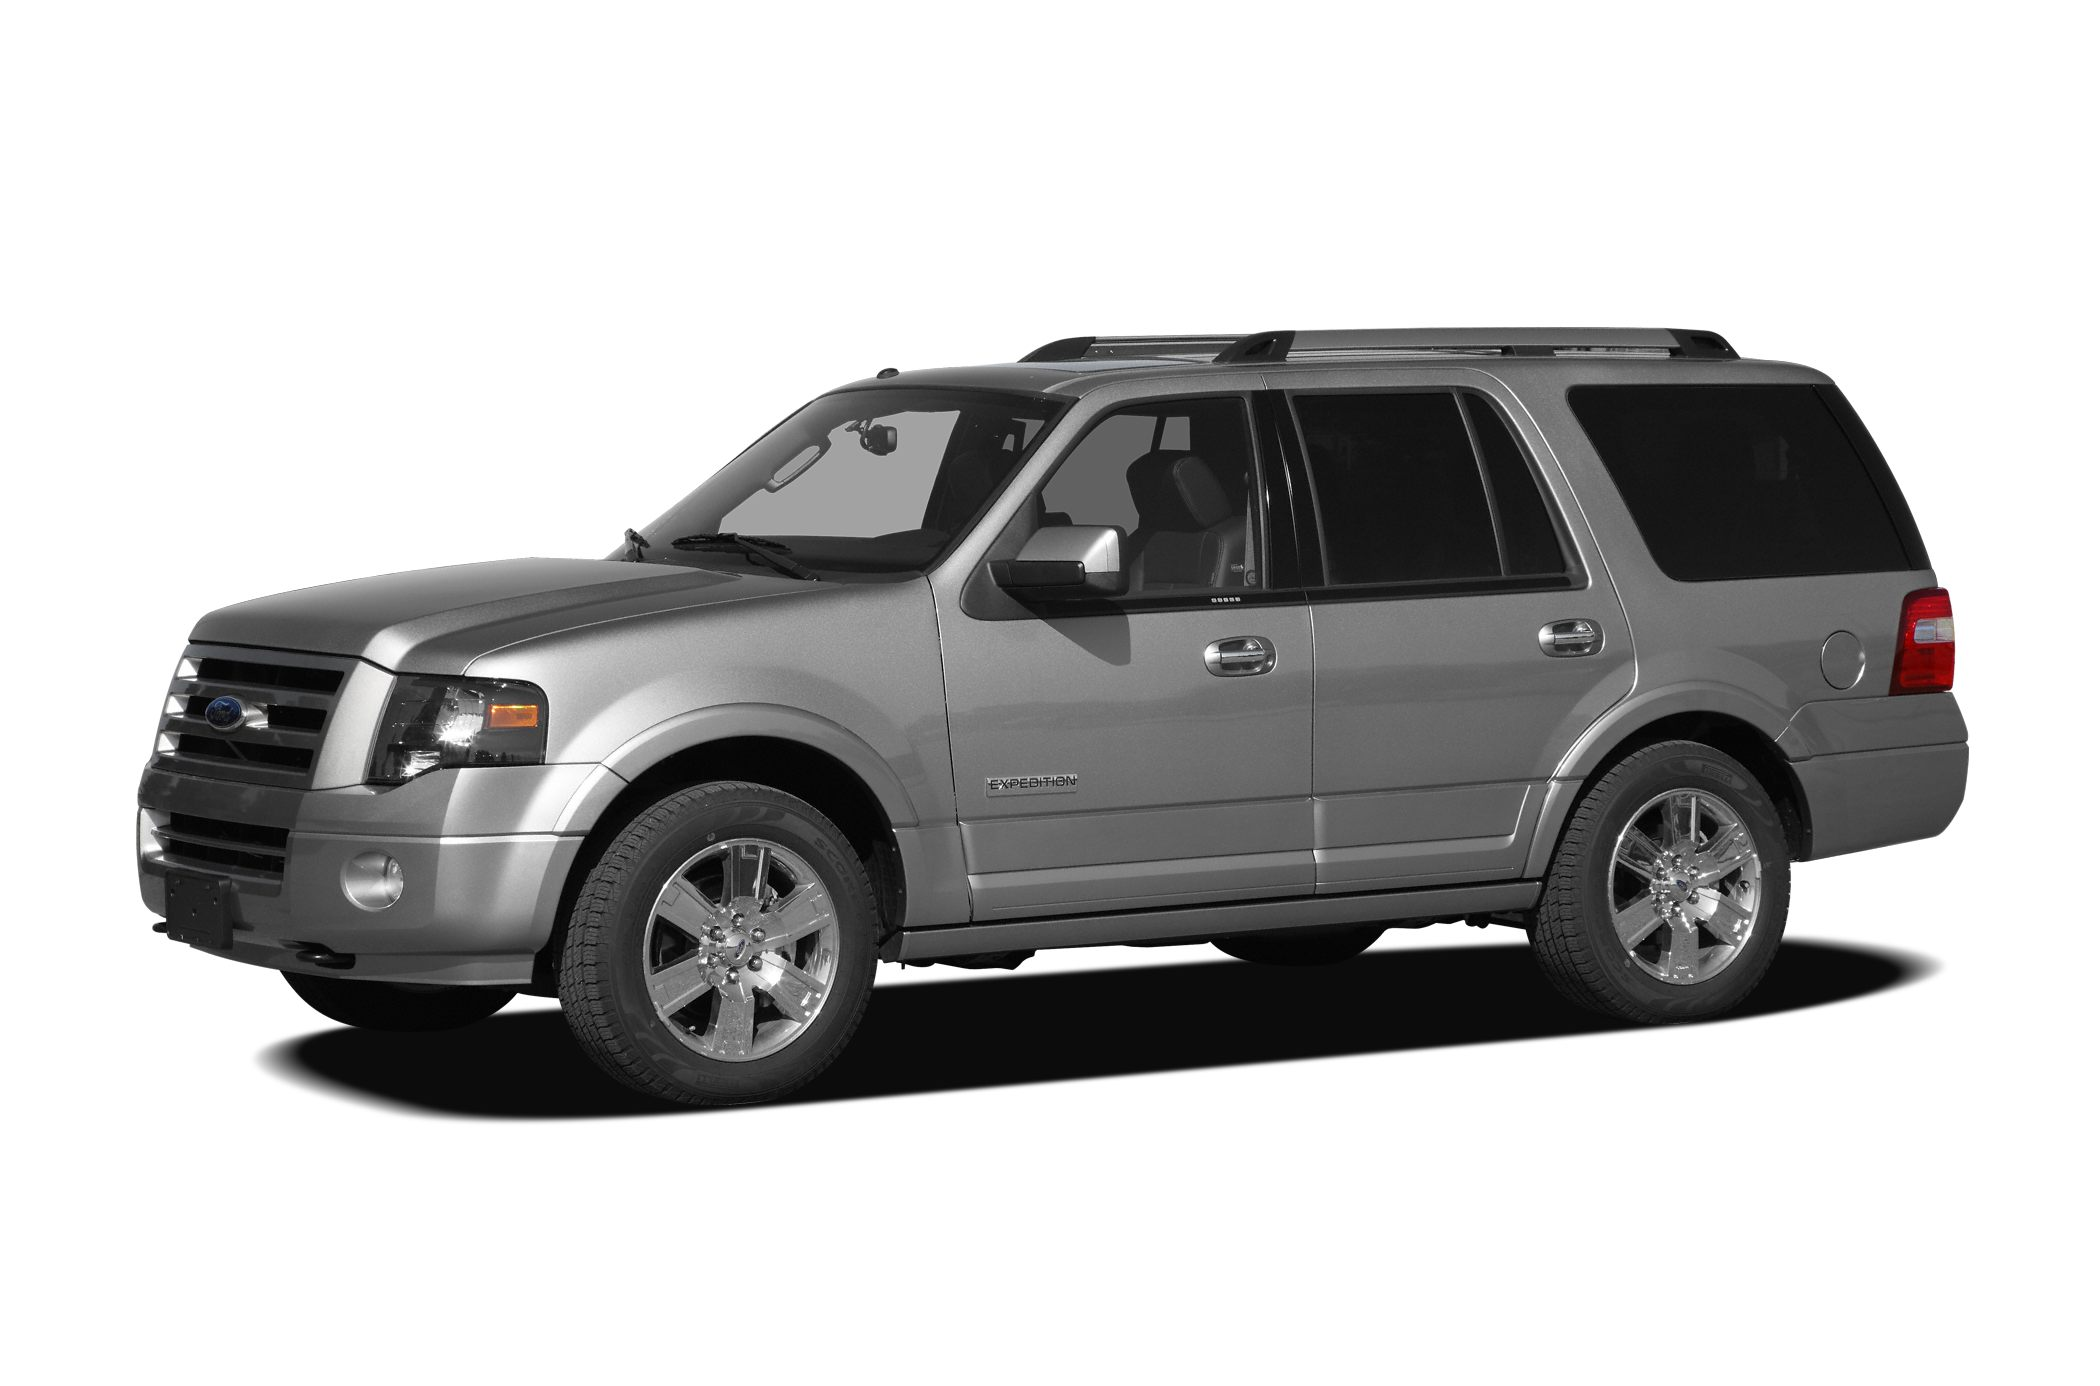 2007 Ford Expedition XLT SUV for sale in Garland for $9,995 with 114,496 miles